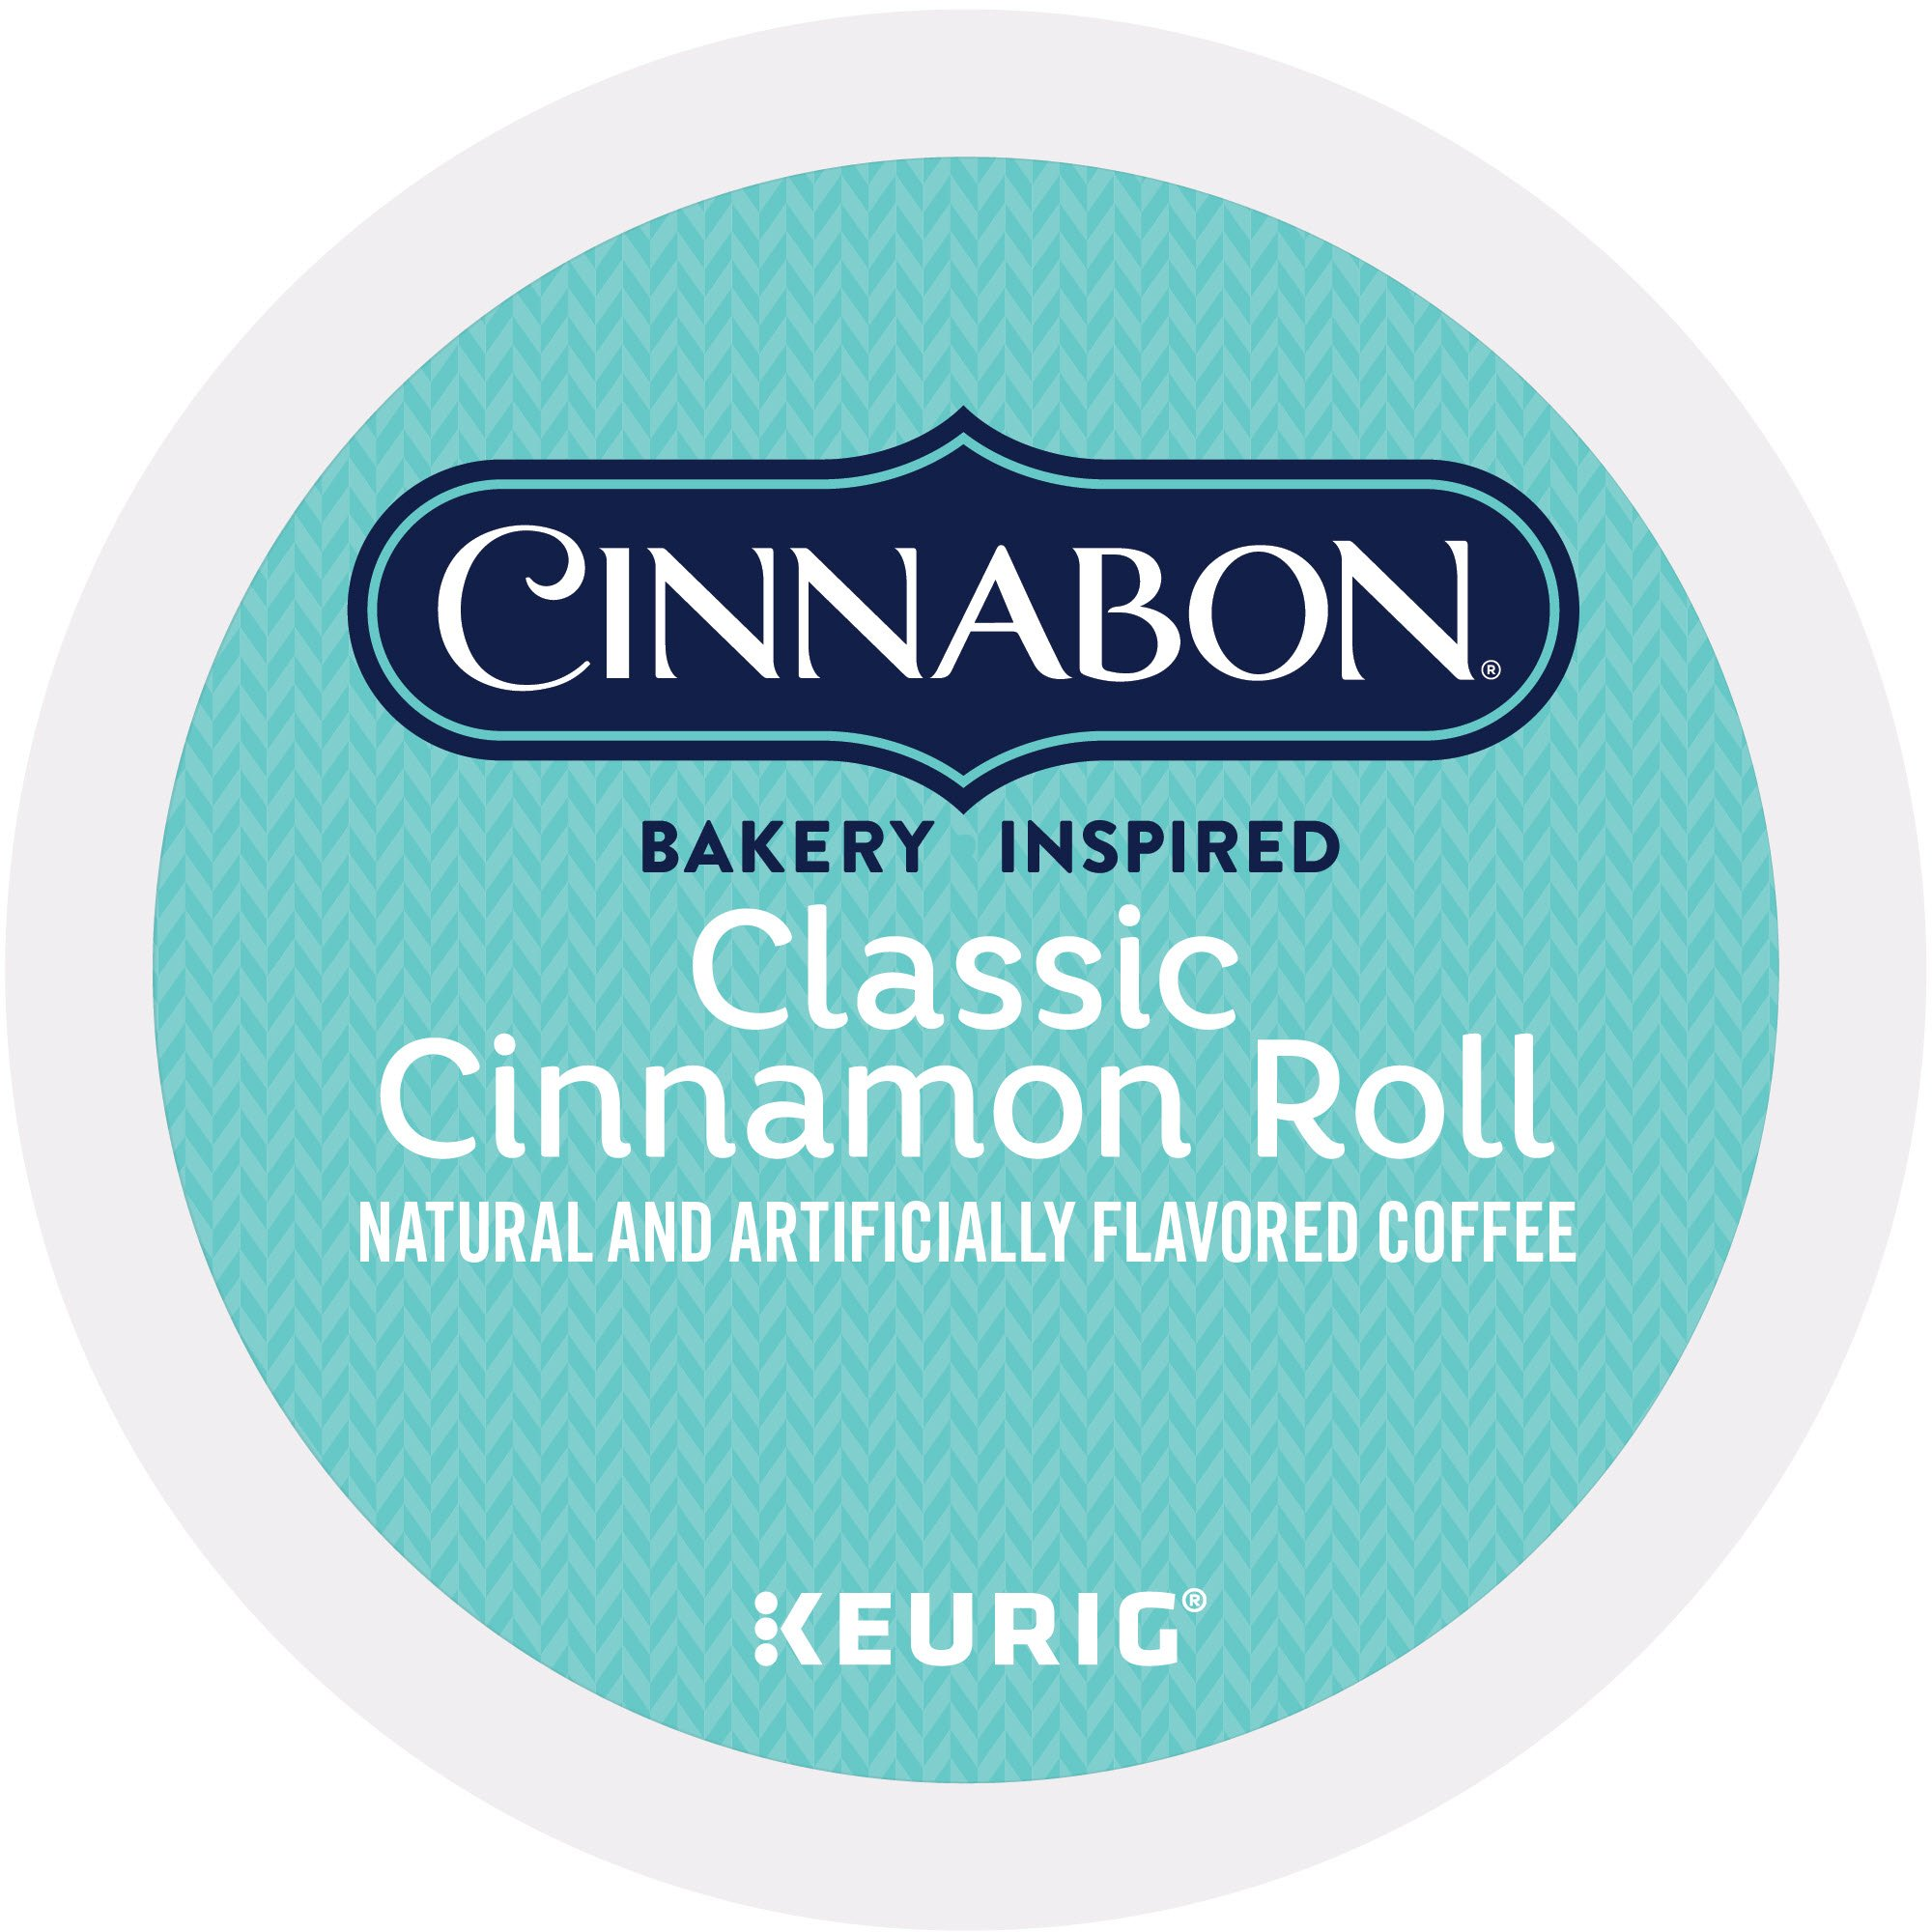 Cinnnabon Classic Cinnamon Roll, Single Serve Coffee K-Cup Pod, Flavored Coffee, 24